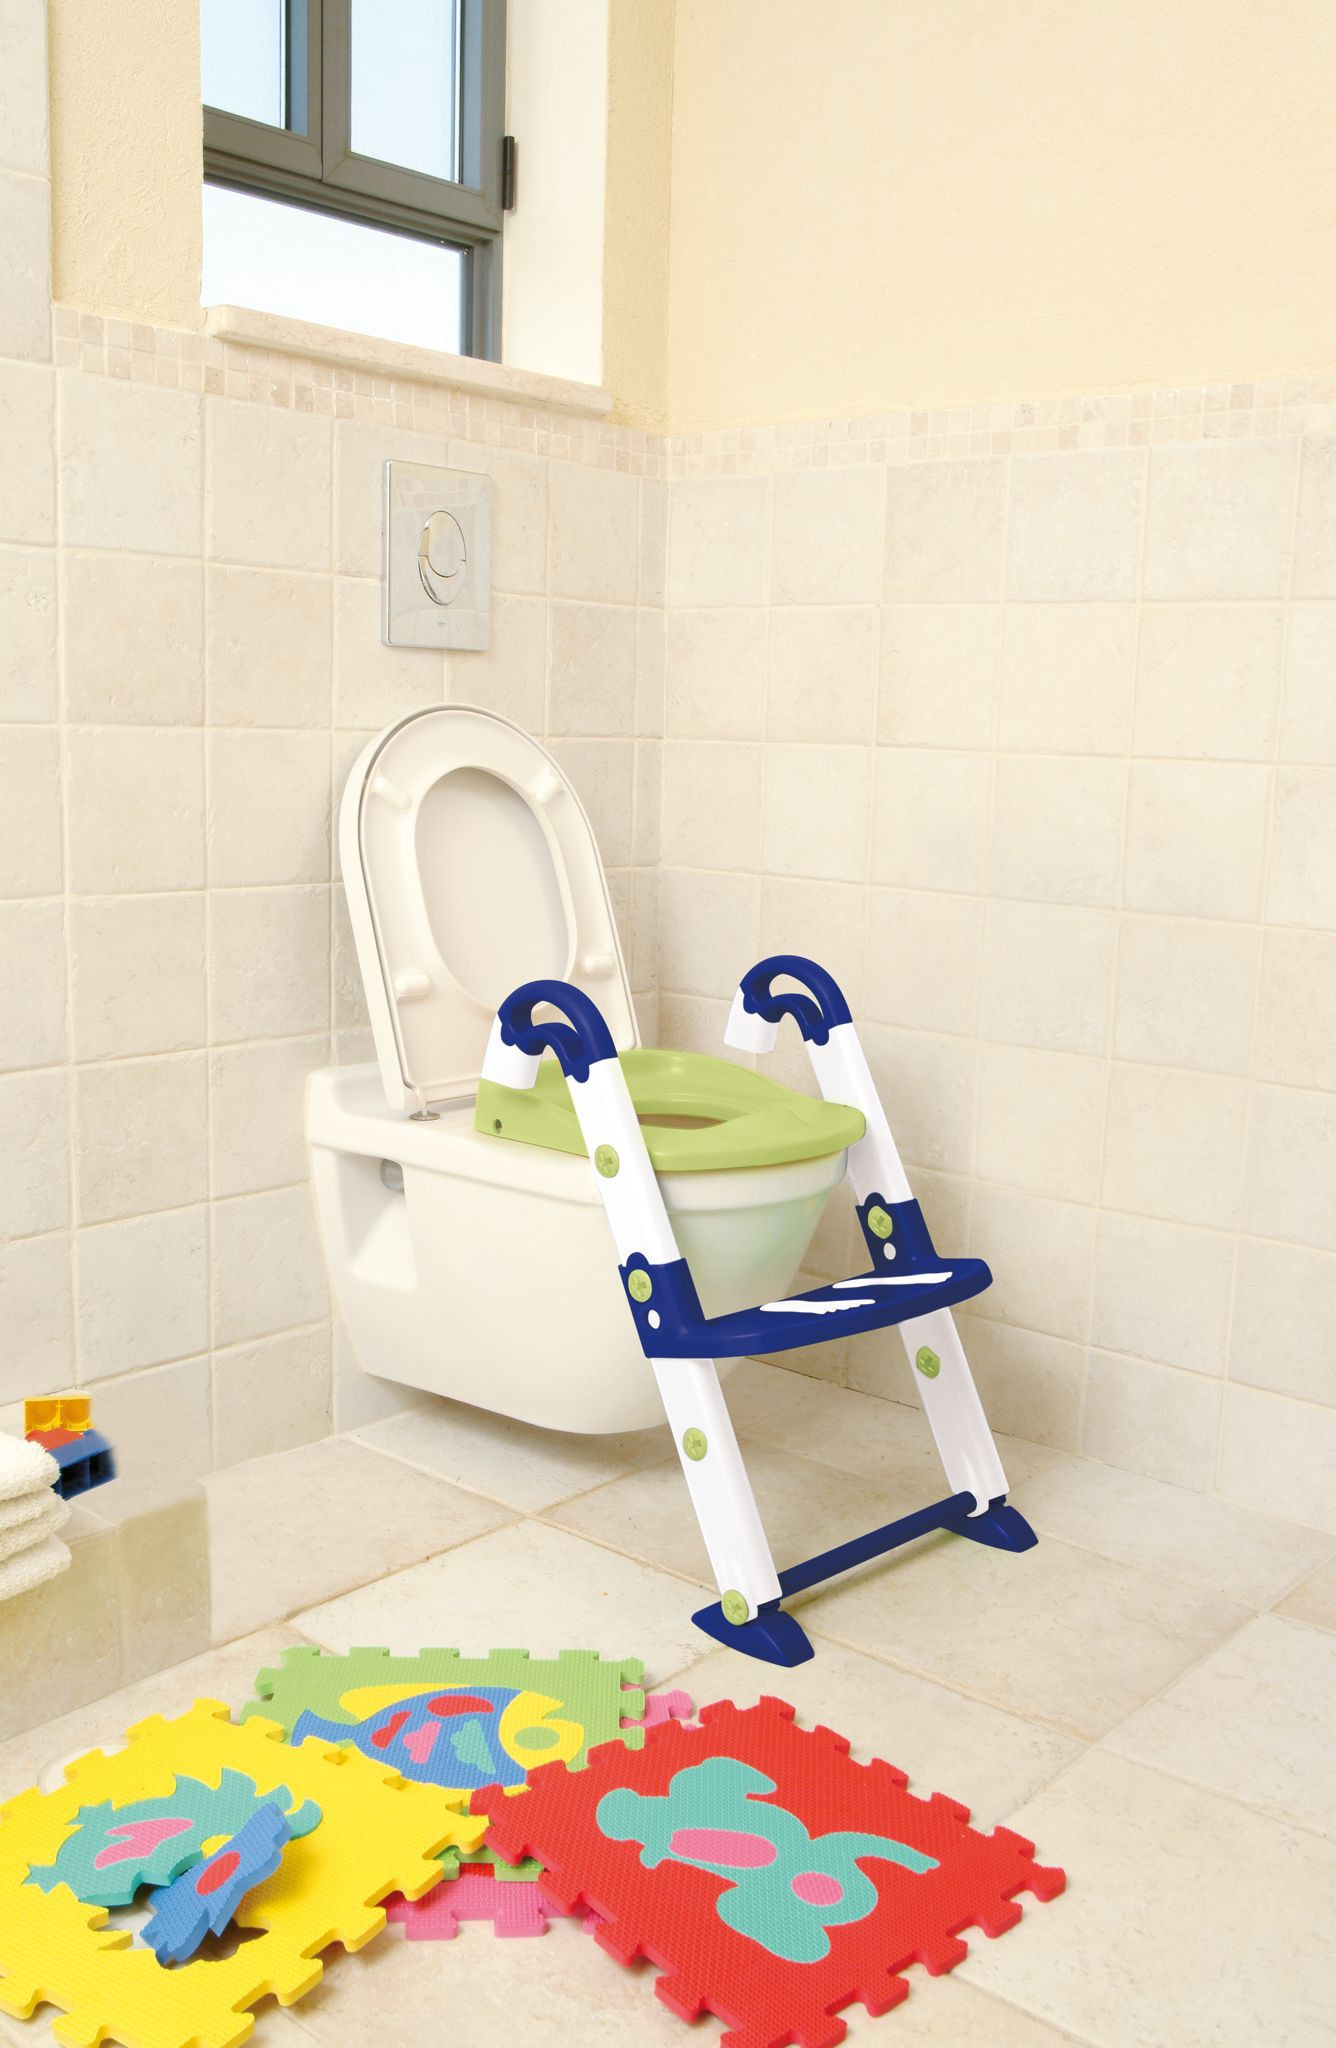 KidsKit Toilet-Trainer 3 in 1, blau/weiß